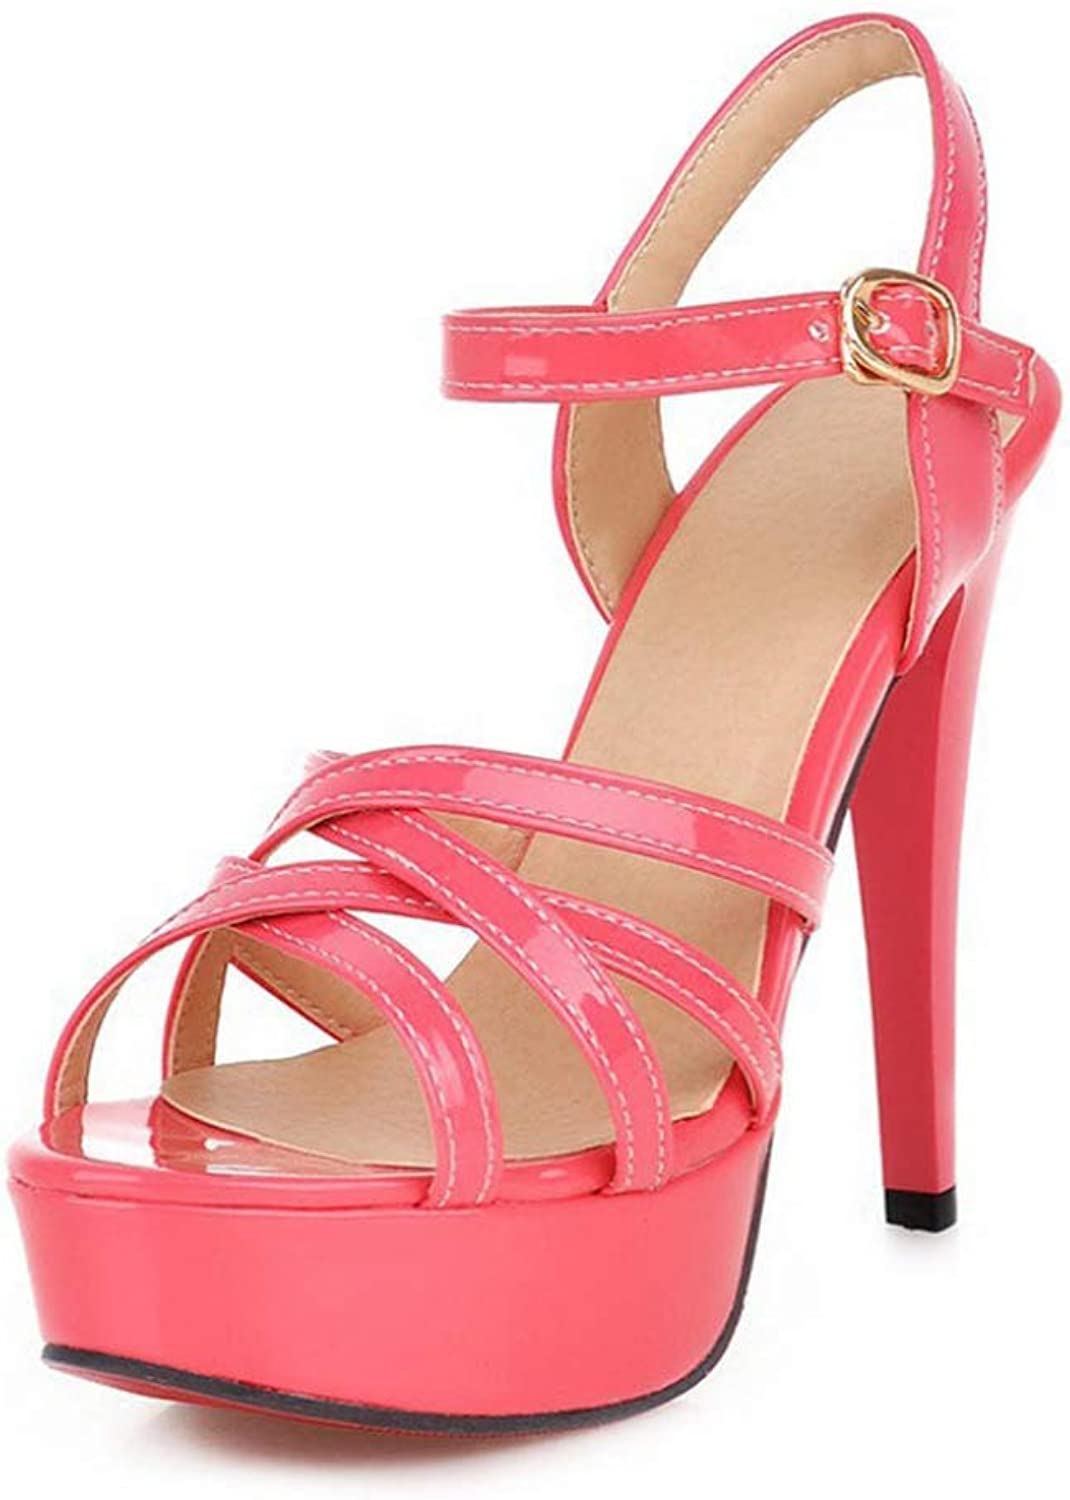 Women High Heels Sandals Summer Platform Ladies Cross Sexy Dress shoes Ankle Strap Party Sandals